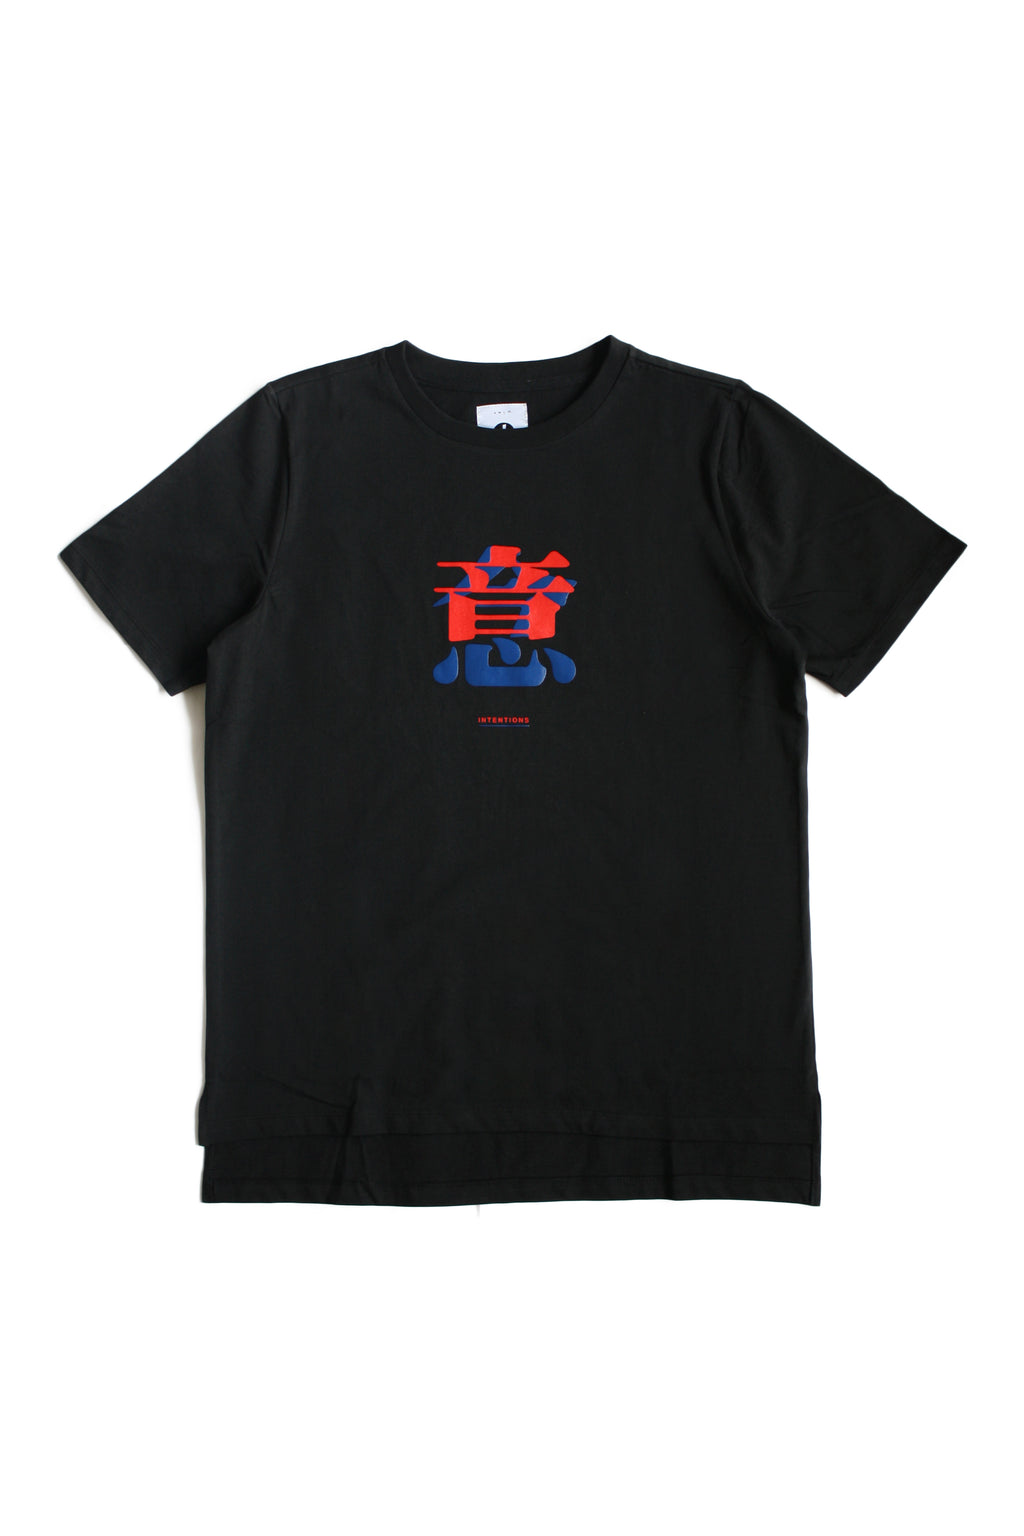 "2. ""INTENTIONS"" Black Tee"